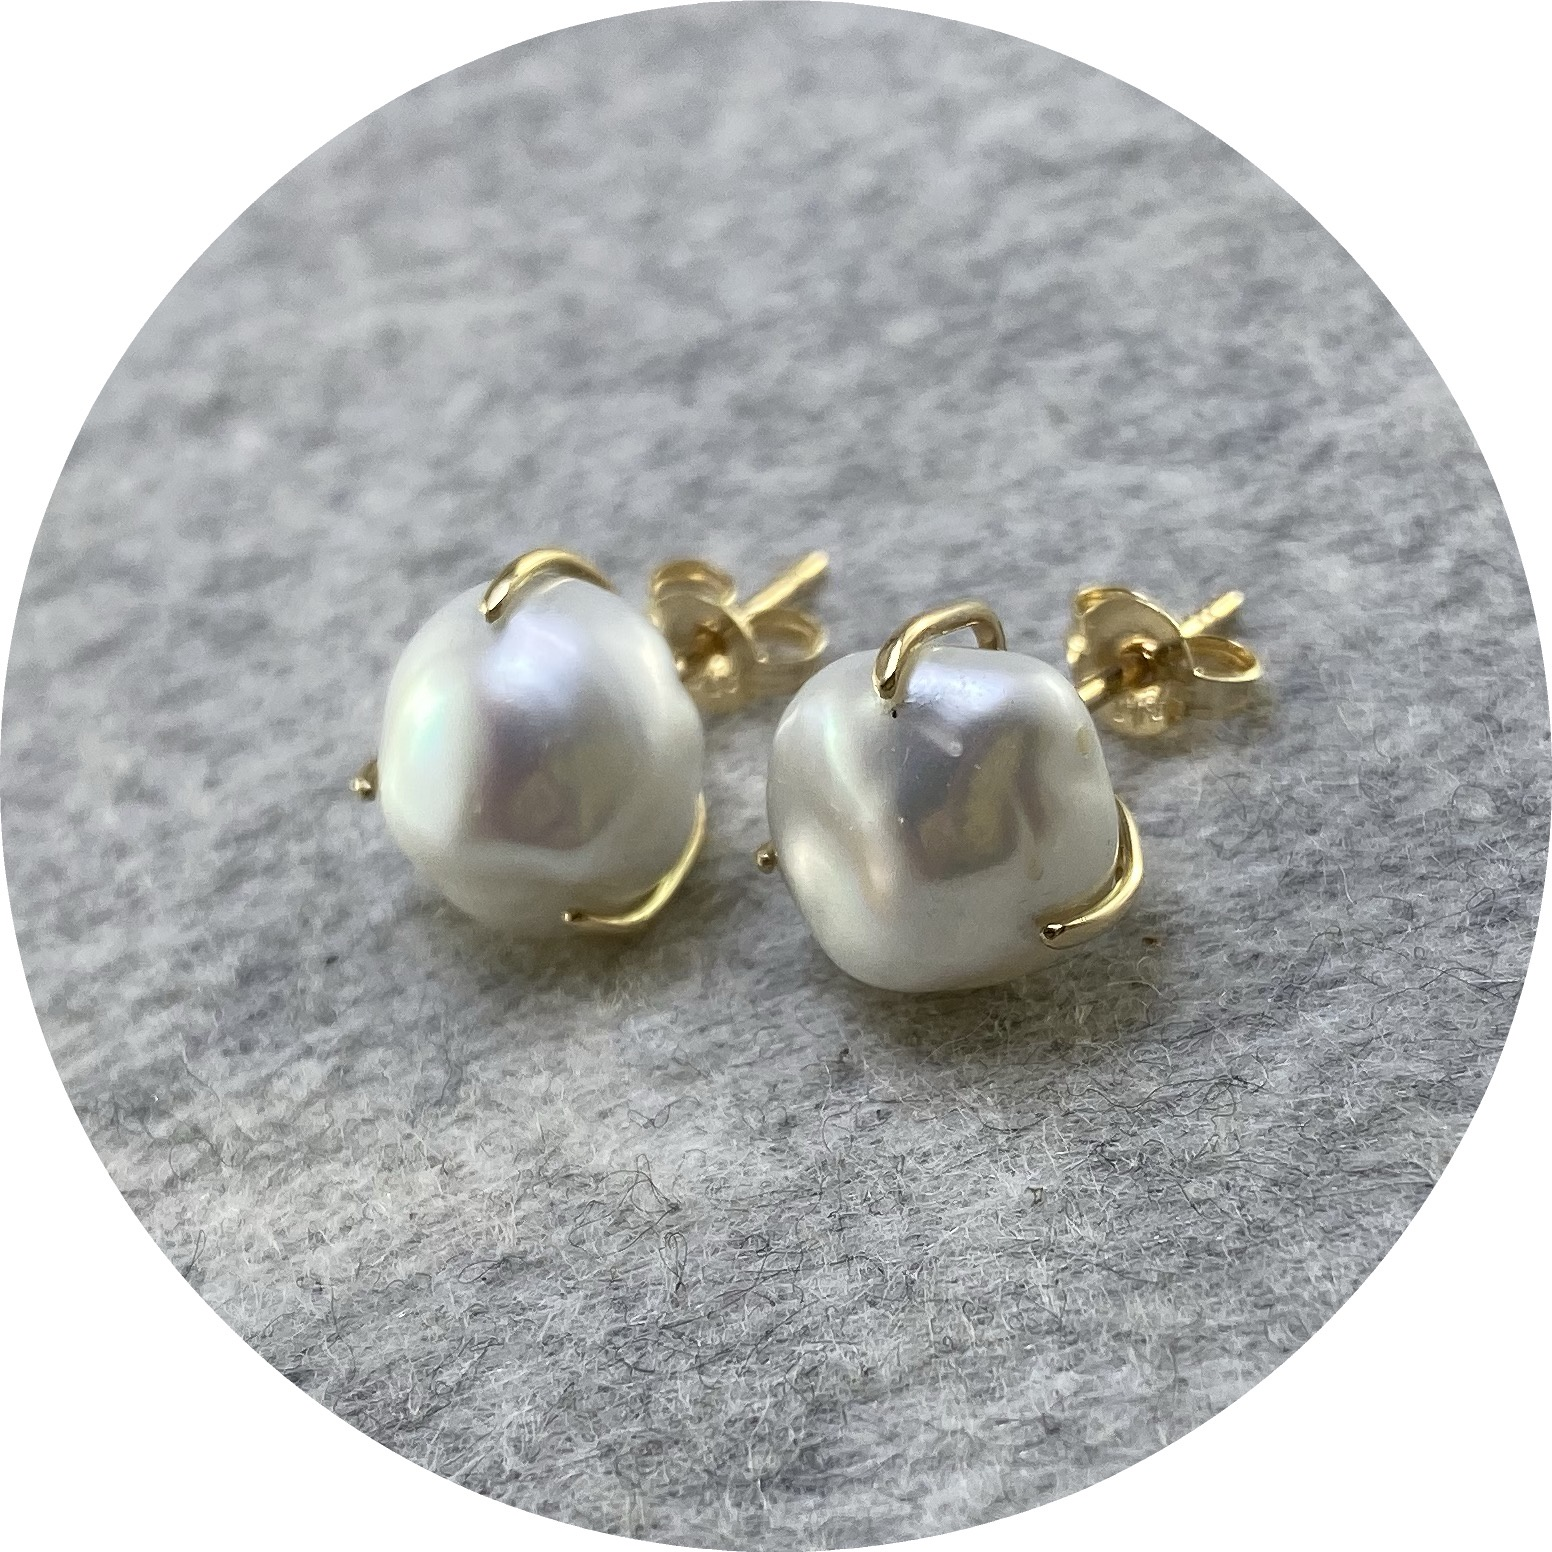 Angela Natalier - 'Satellite Studs with Baroque Pearls', 9ct yellow gold, pearl